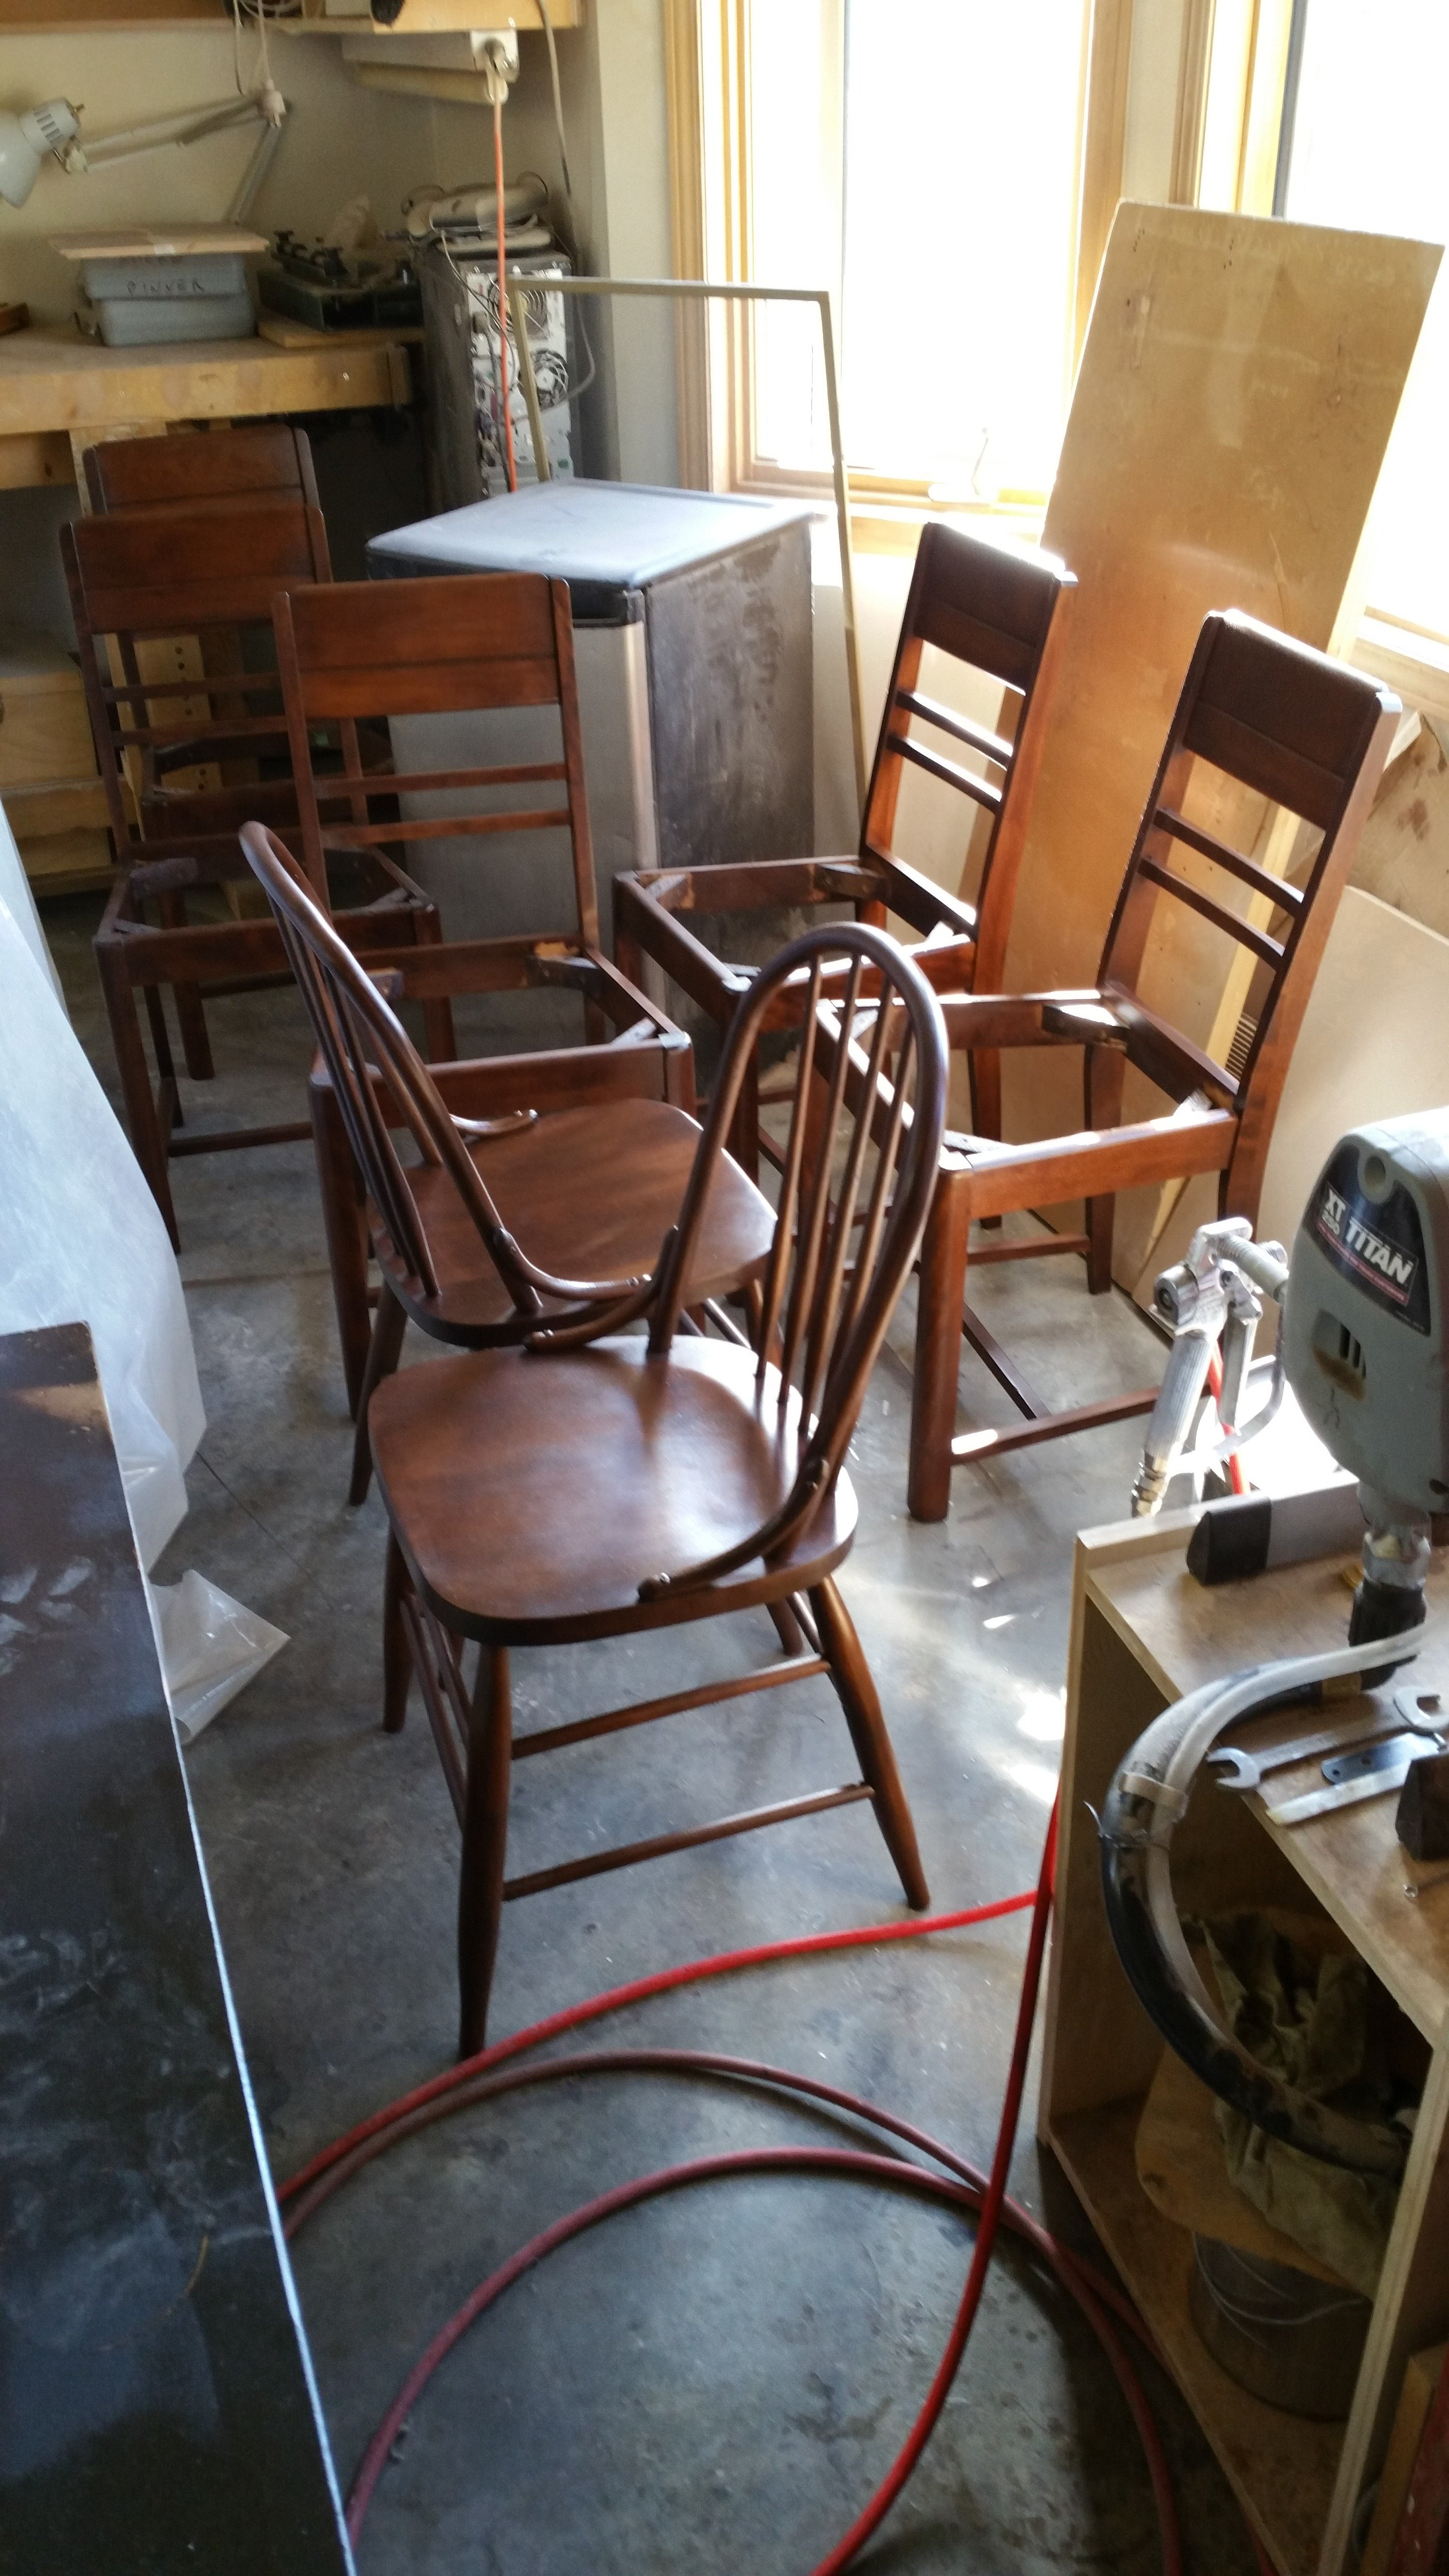 Chairs refinished to match table